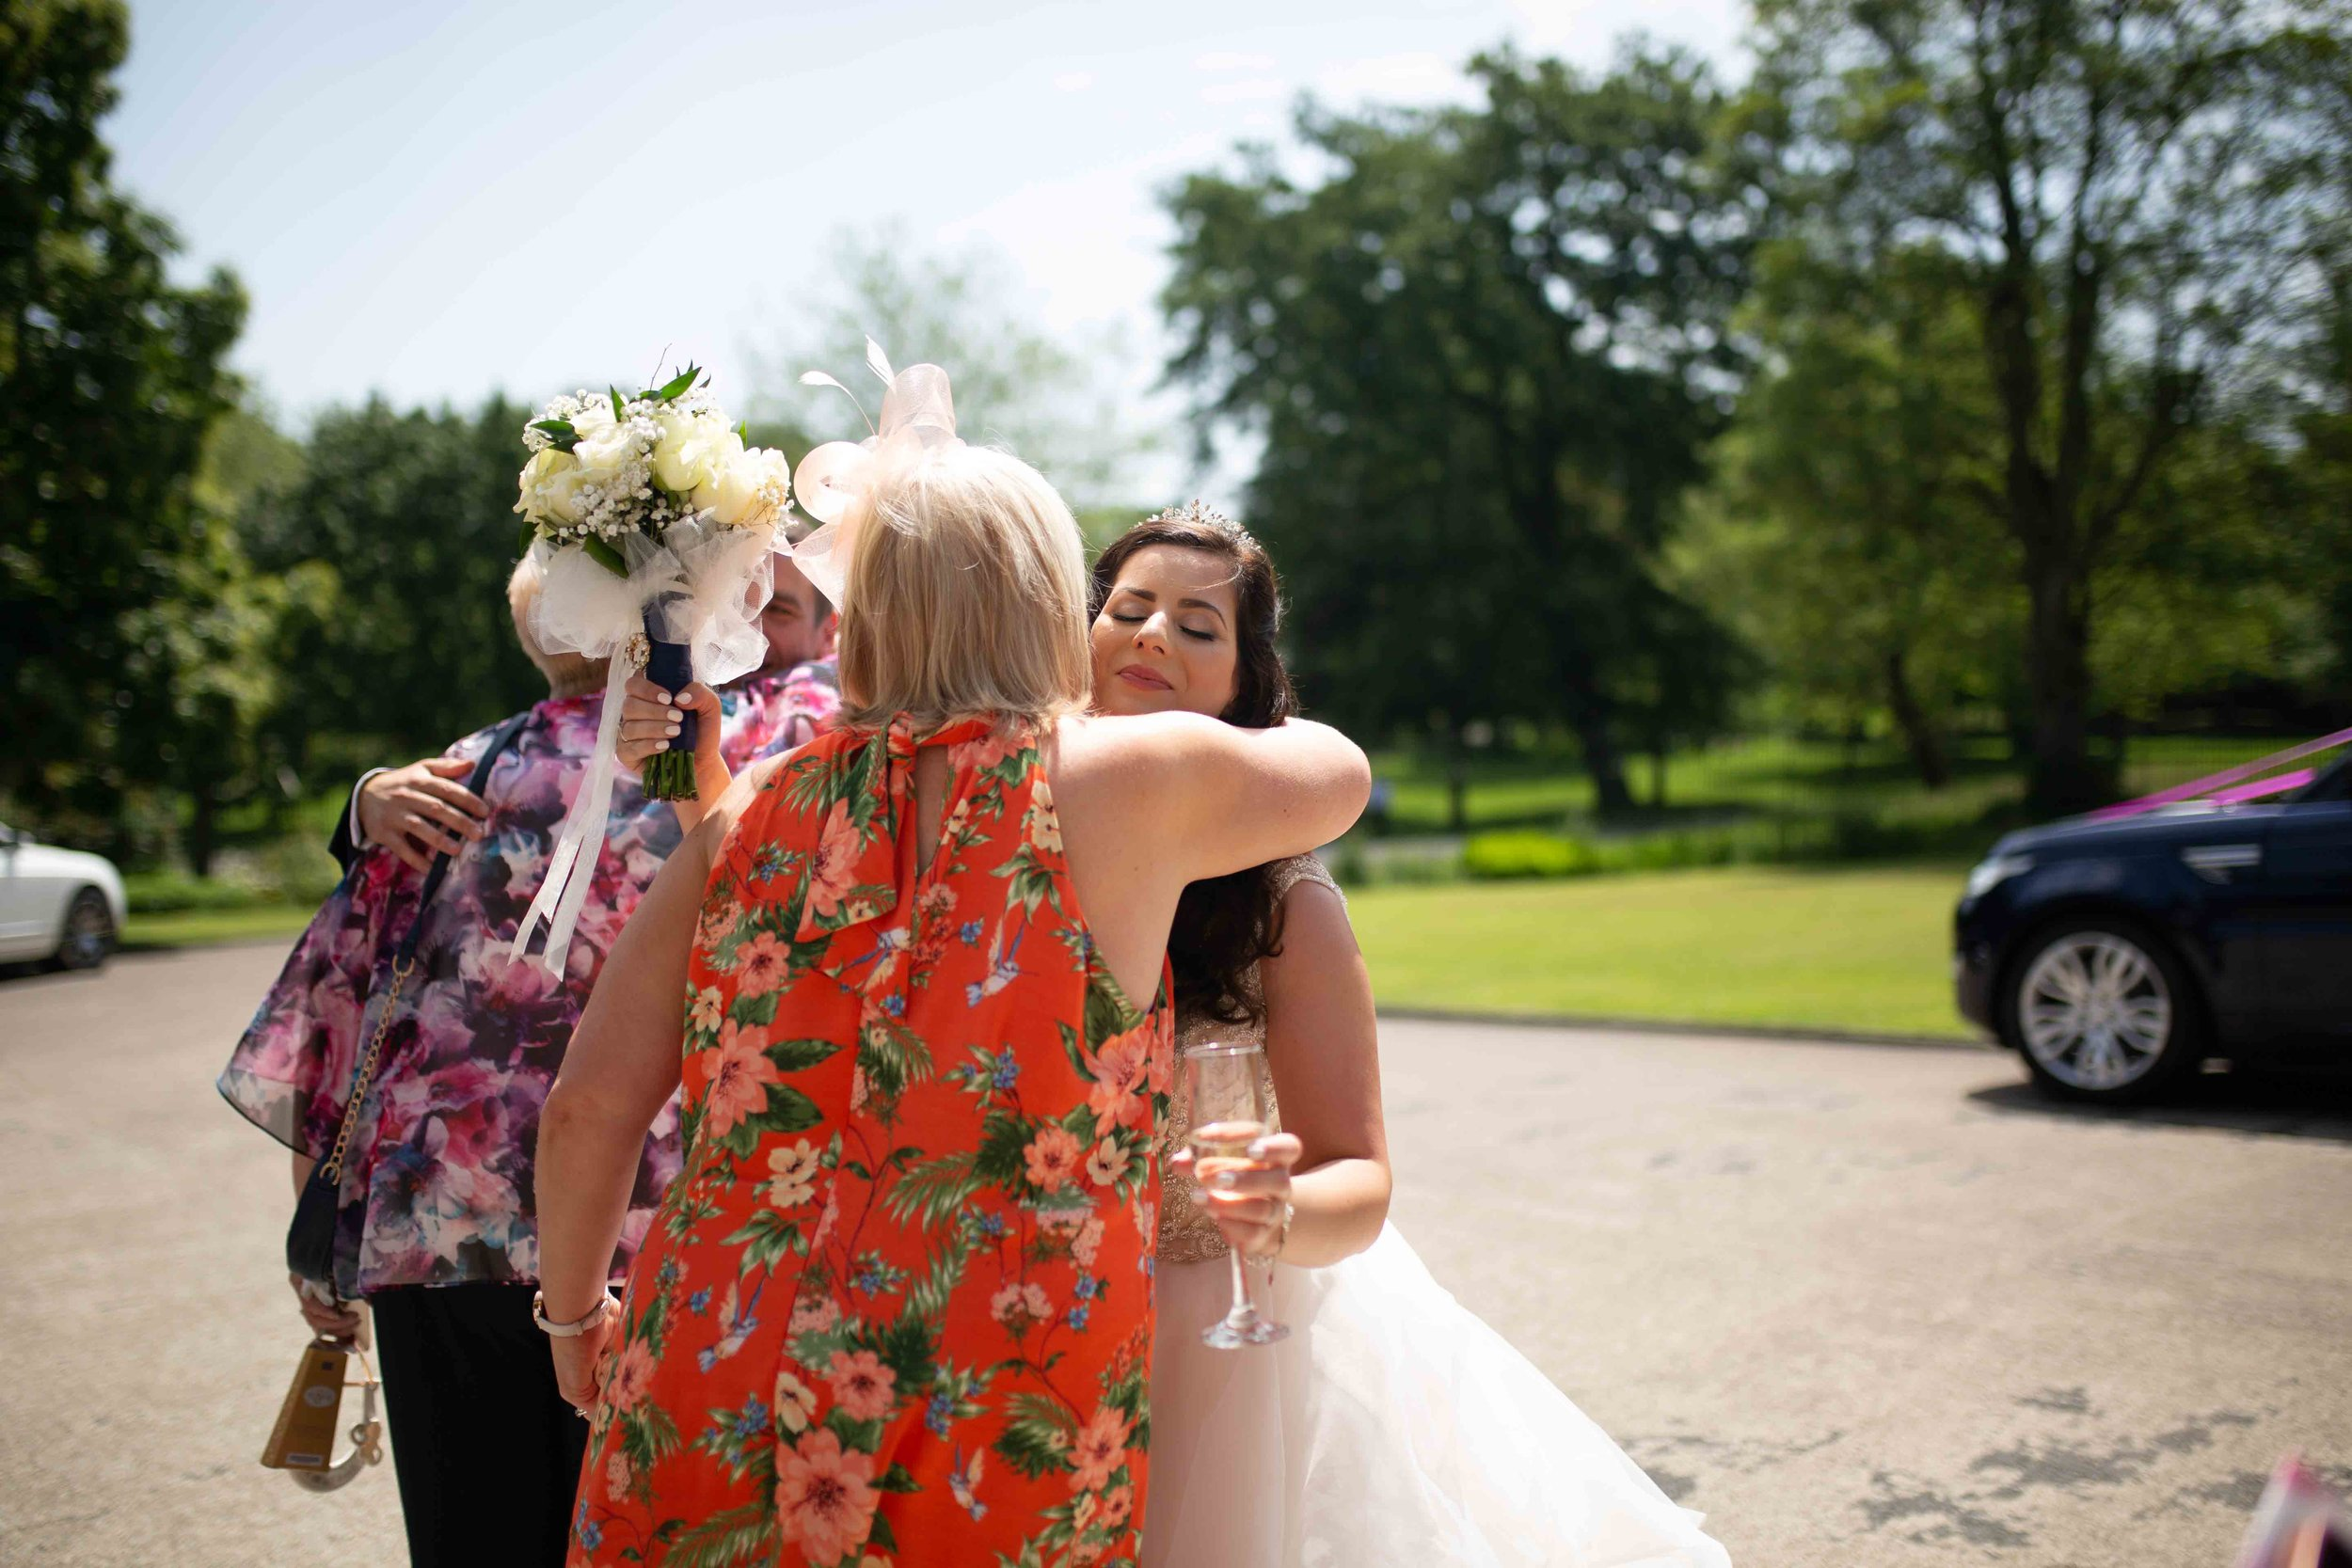 Lea-cooper-photography-wedding-photography-dudley-priory-west-bromwich-albion-football-club-wedding-WBAFC-willenhall-wolverhampton-west-midlands-uk-12.JPG